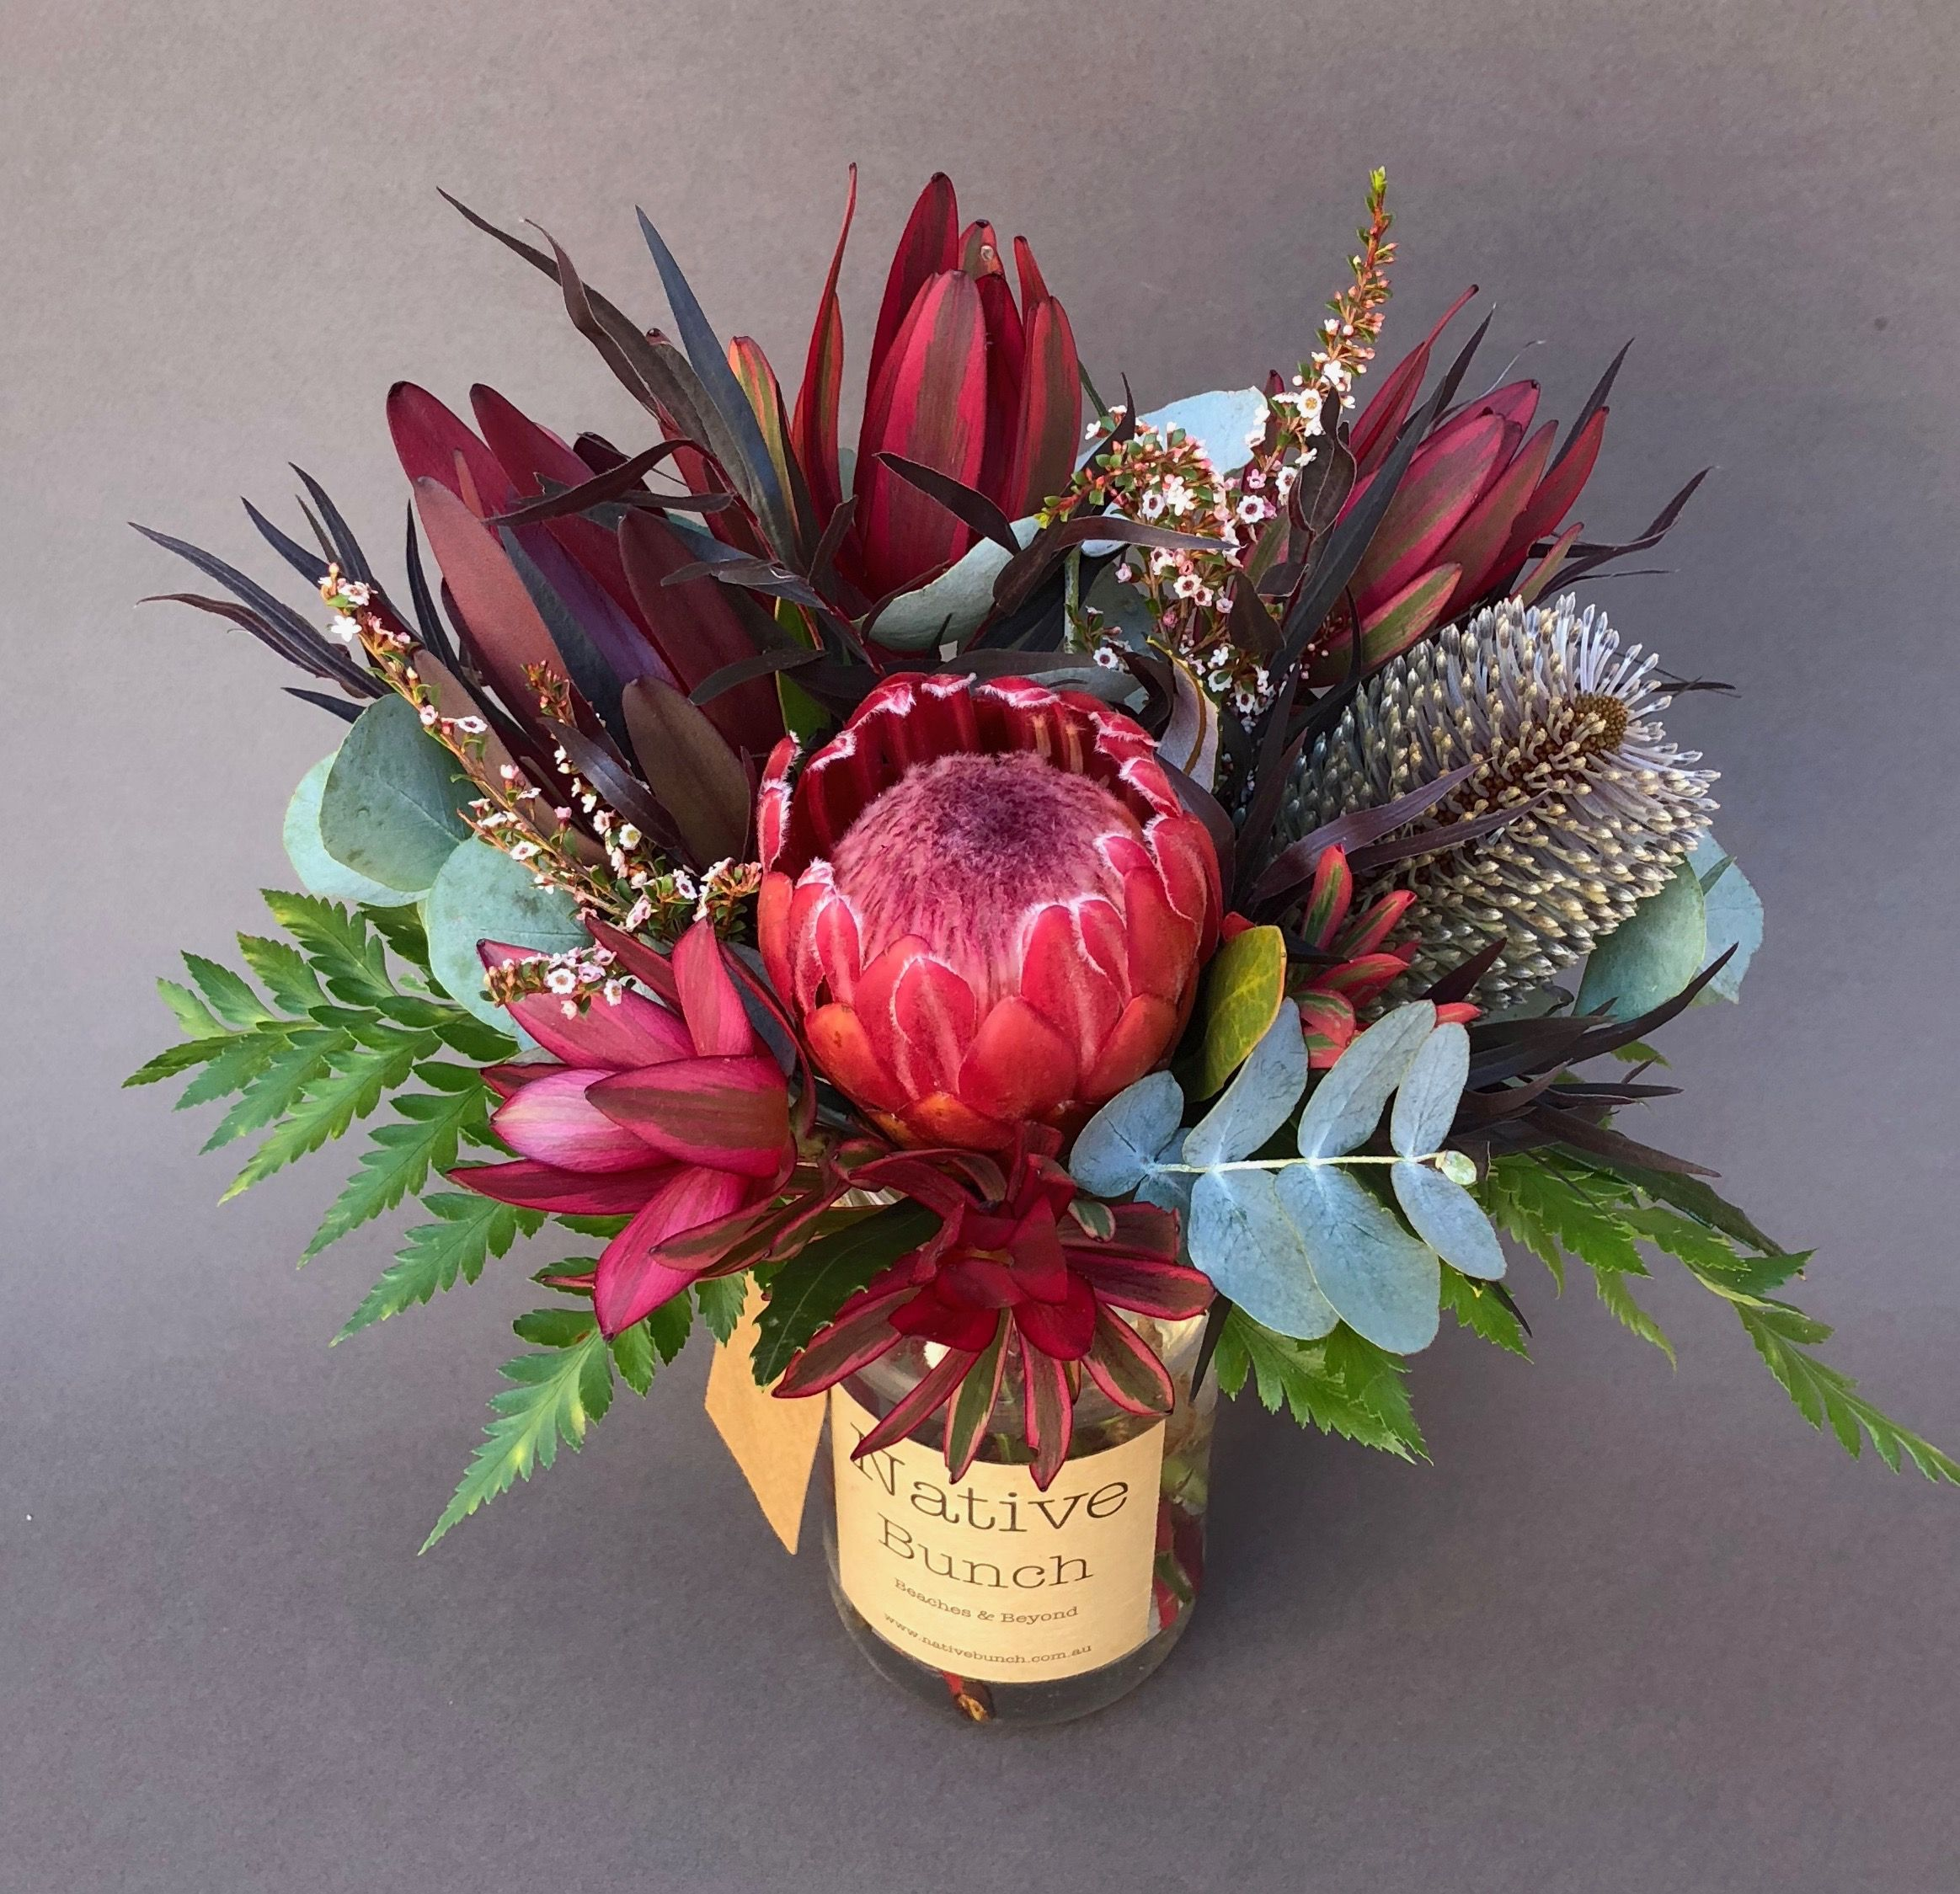 Native flower Posy of Protea, Banksia, Thryptomene